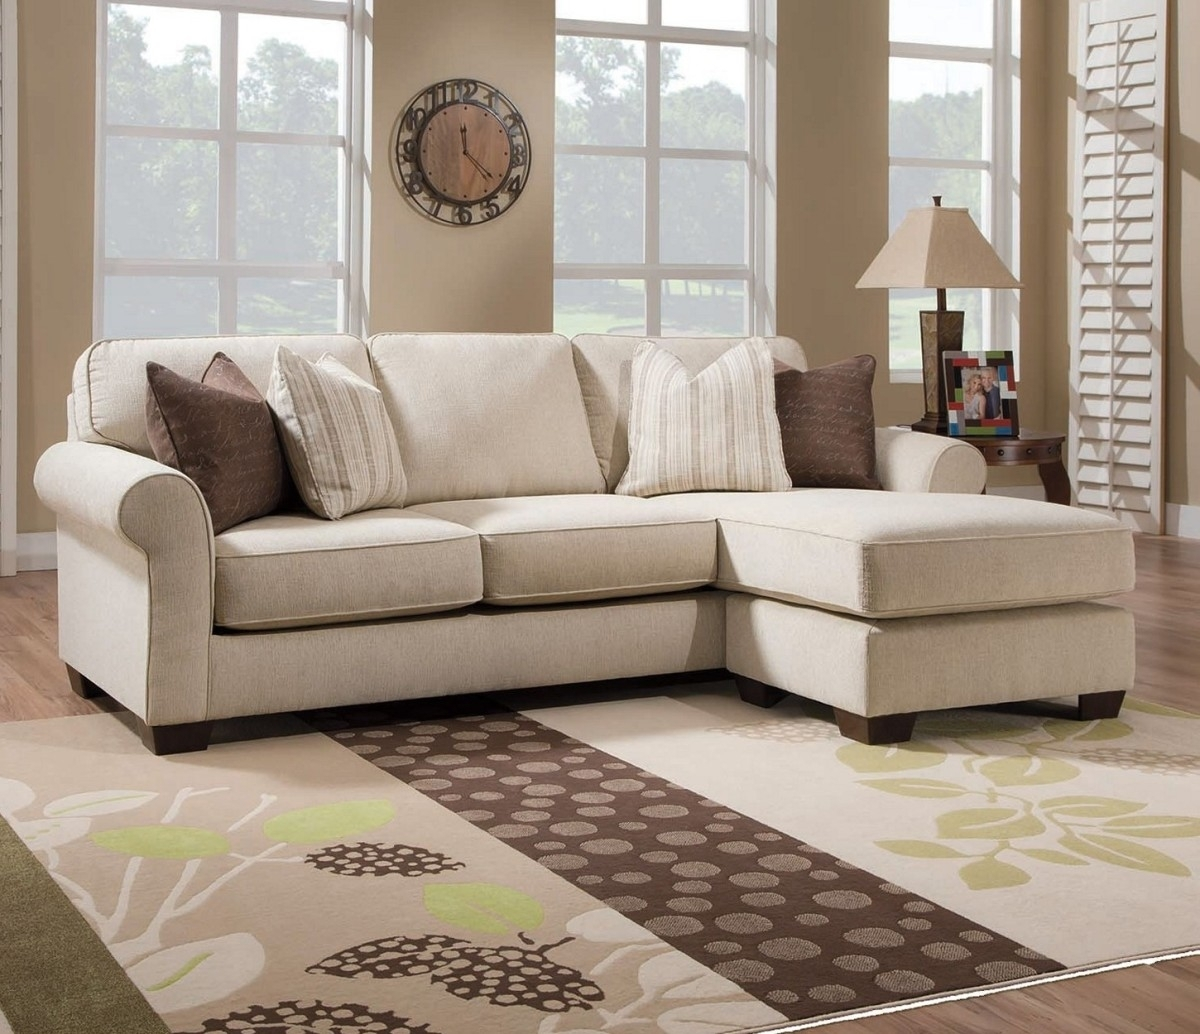 Sectional Sofas For Small Spaces Canada On With Hd Resolution With Canada Sectional Sofas For Small Spaces (Image 7 of 10)